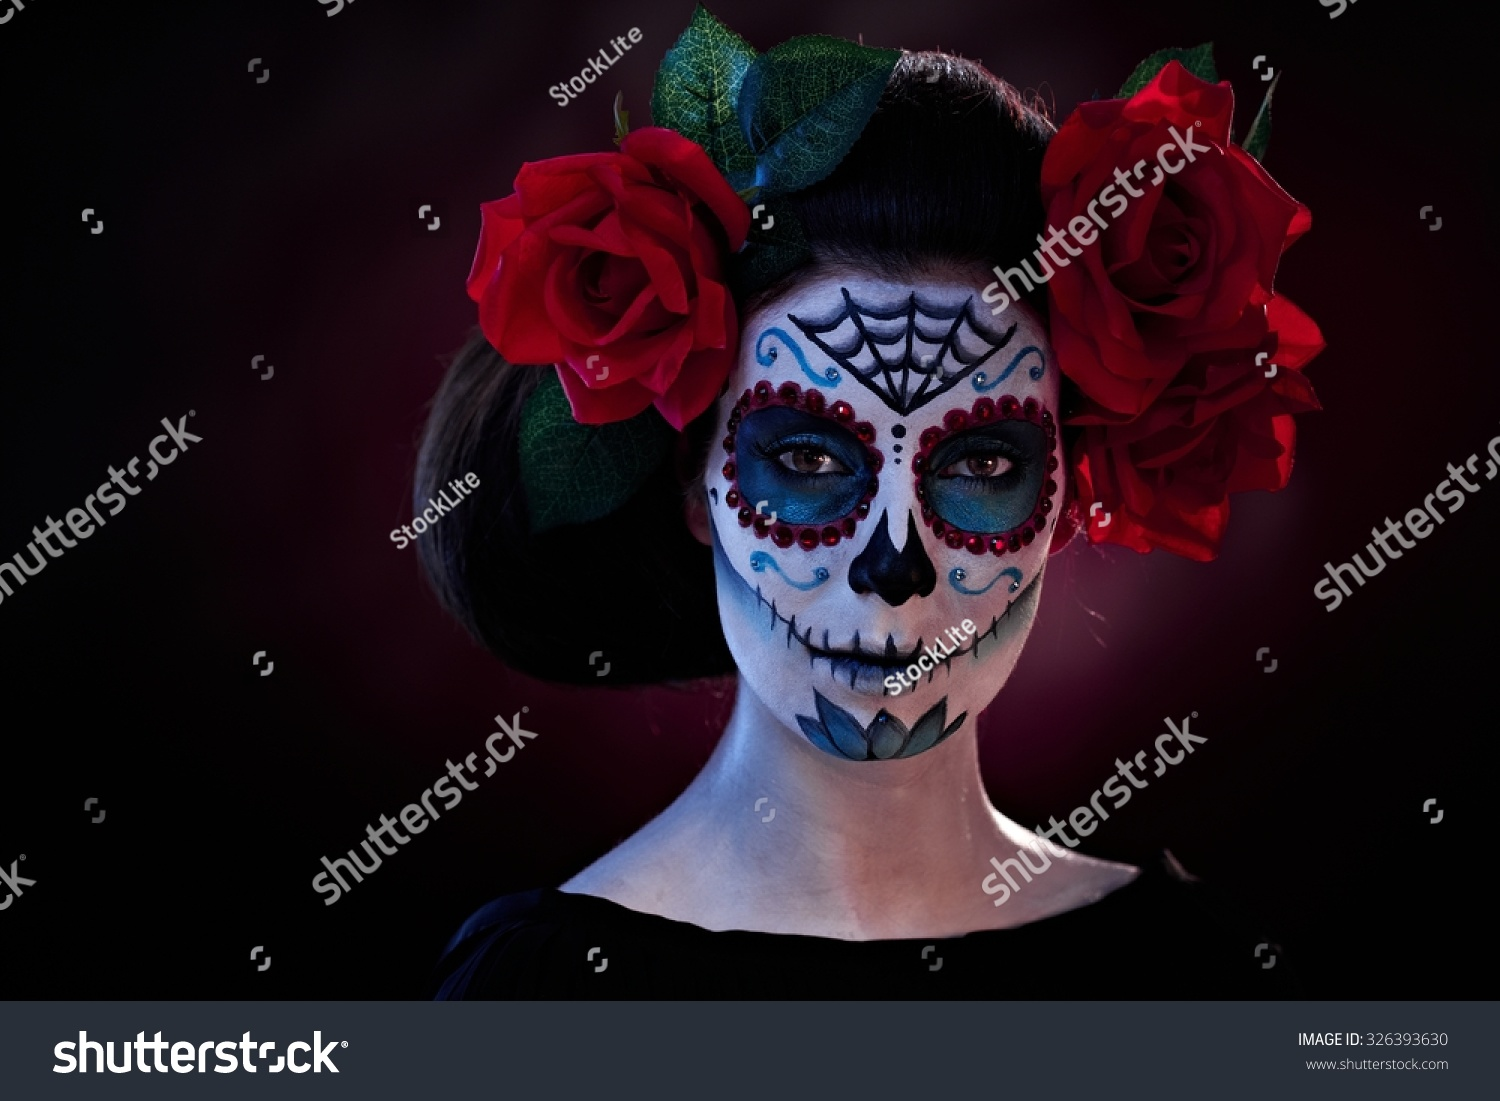 Emejing Halloween Makeup Mexican Images - Halloween Ideas 2017 ...